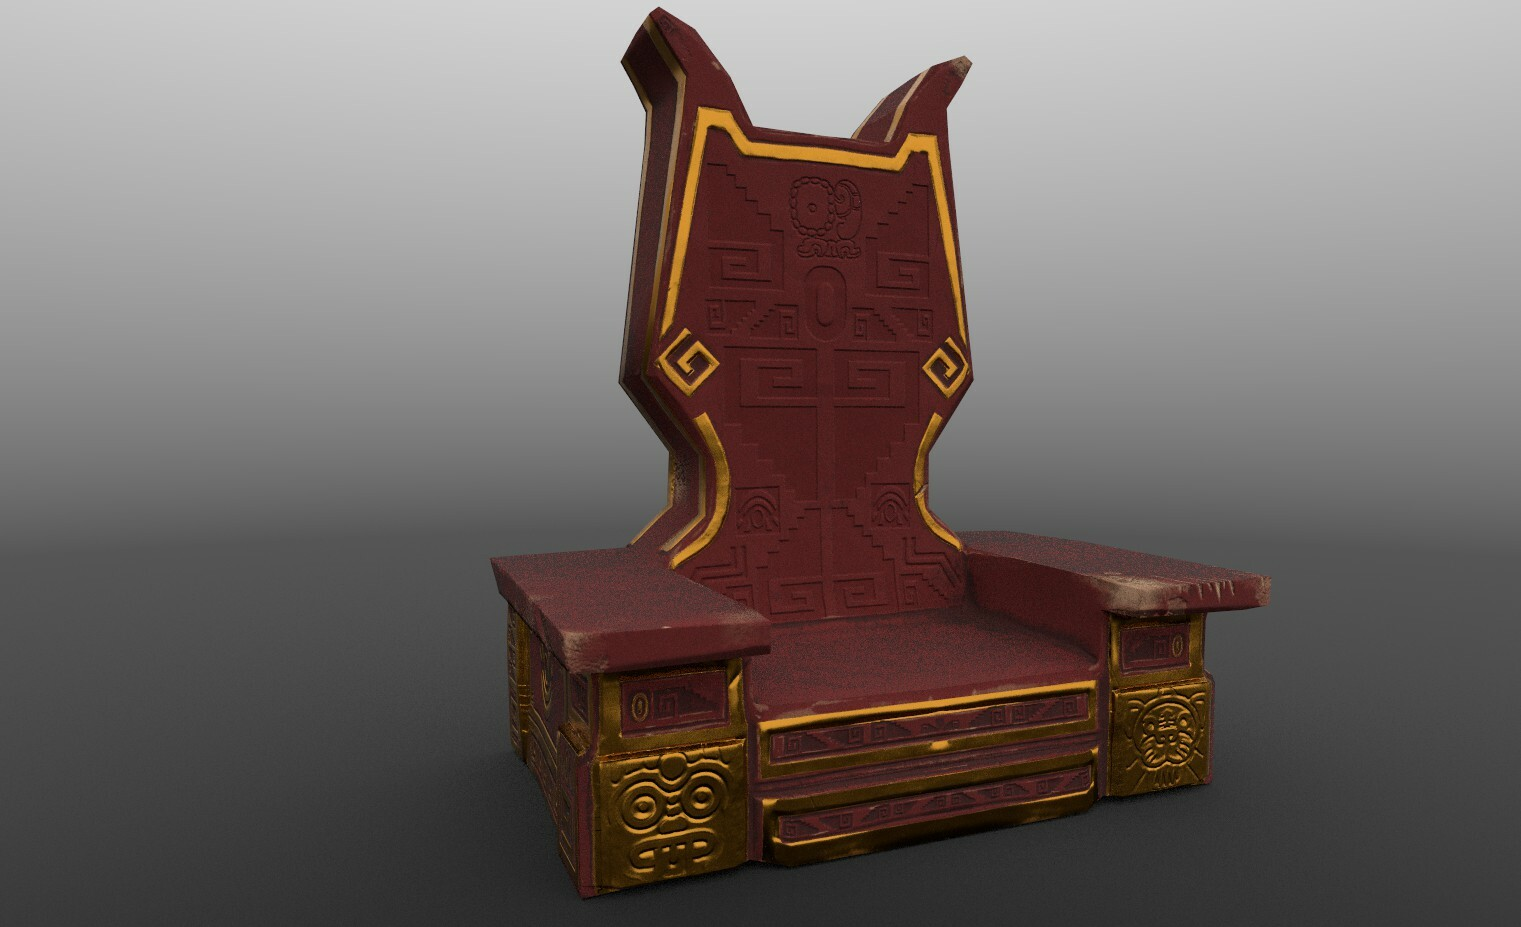 Christopher demers aapo throne